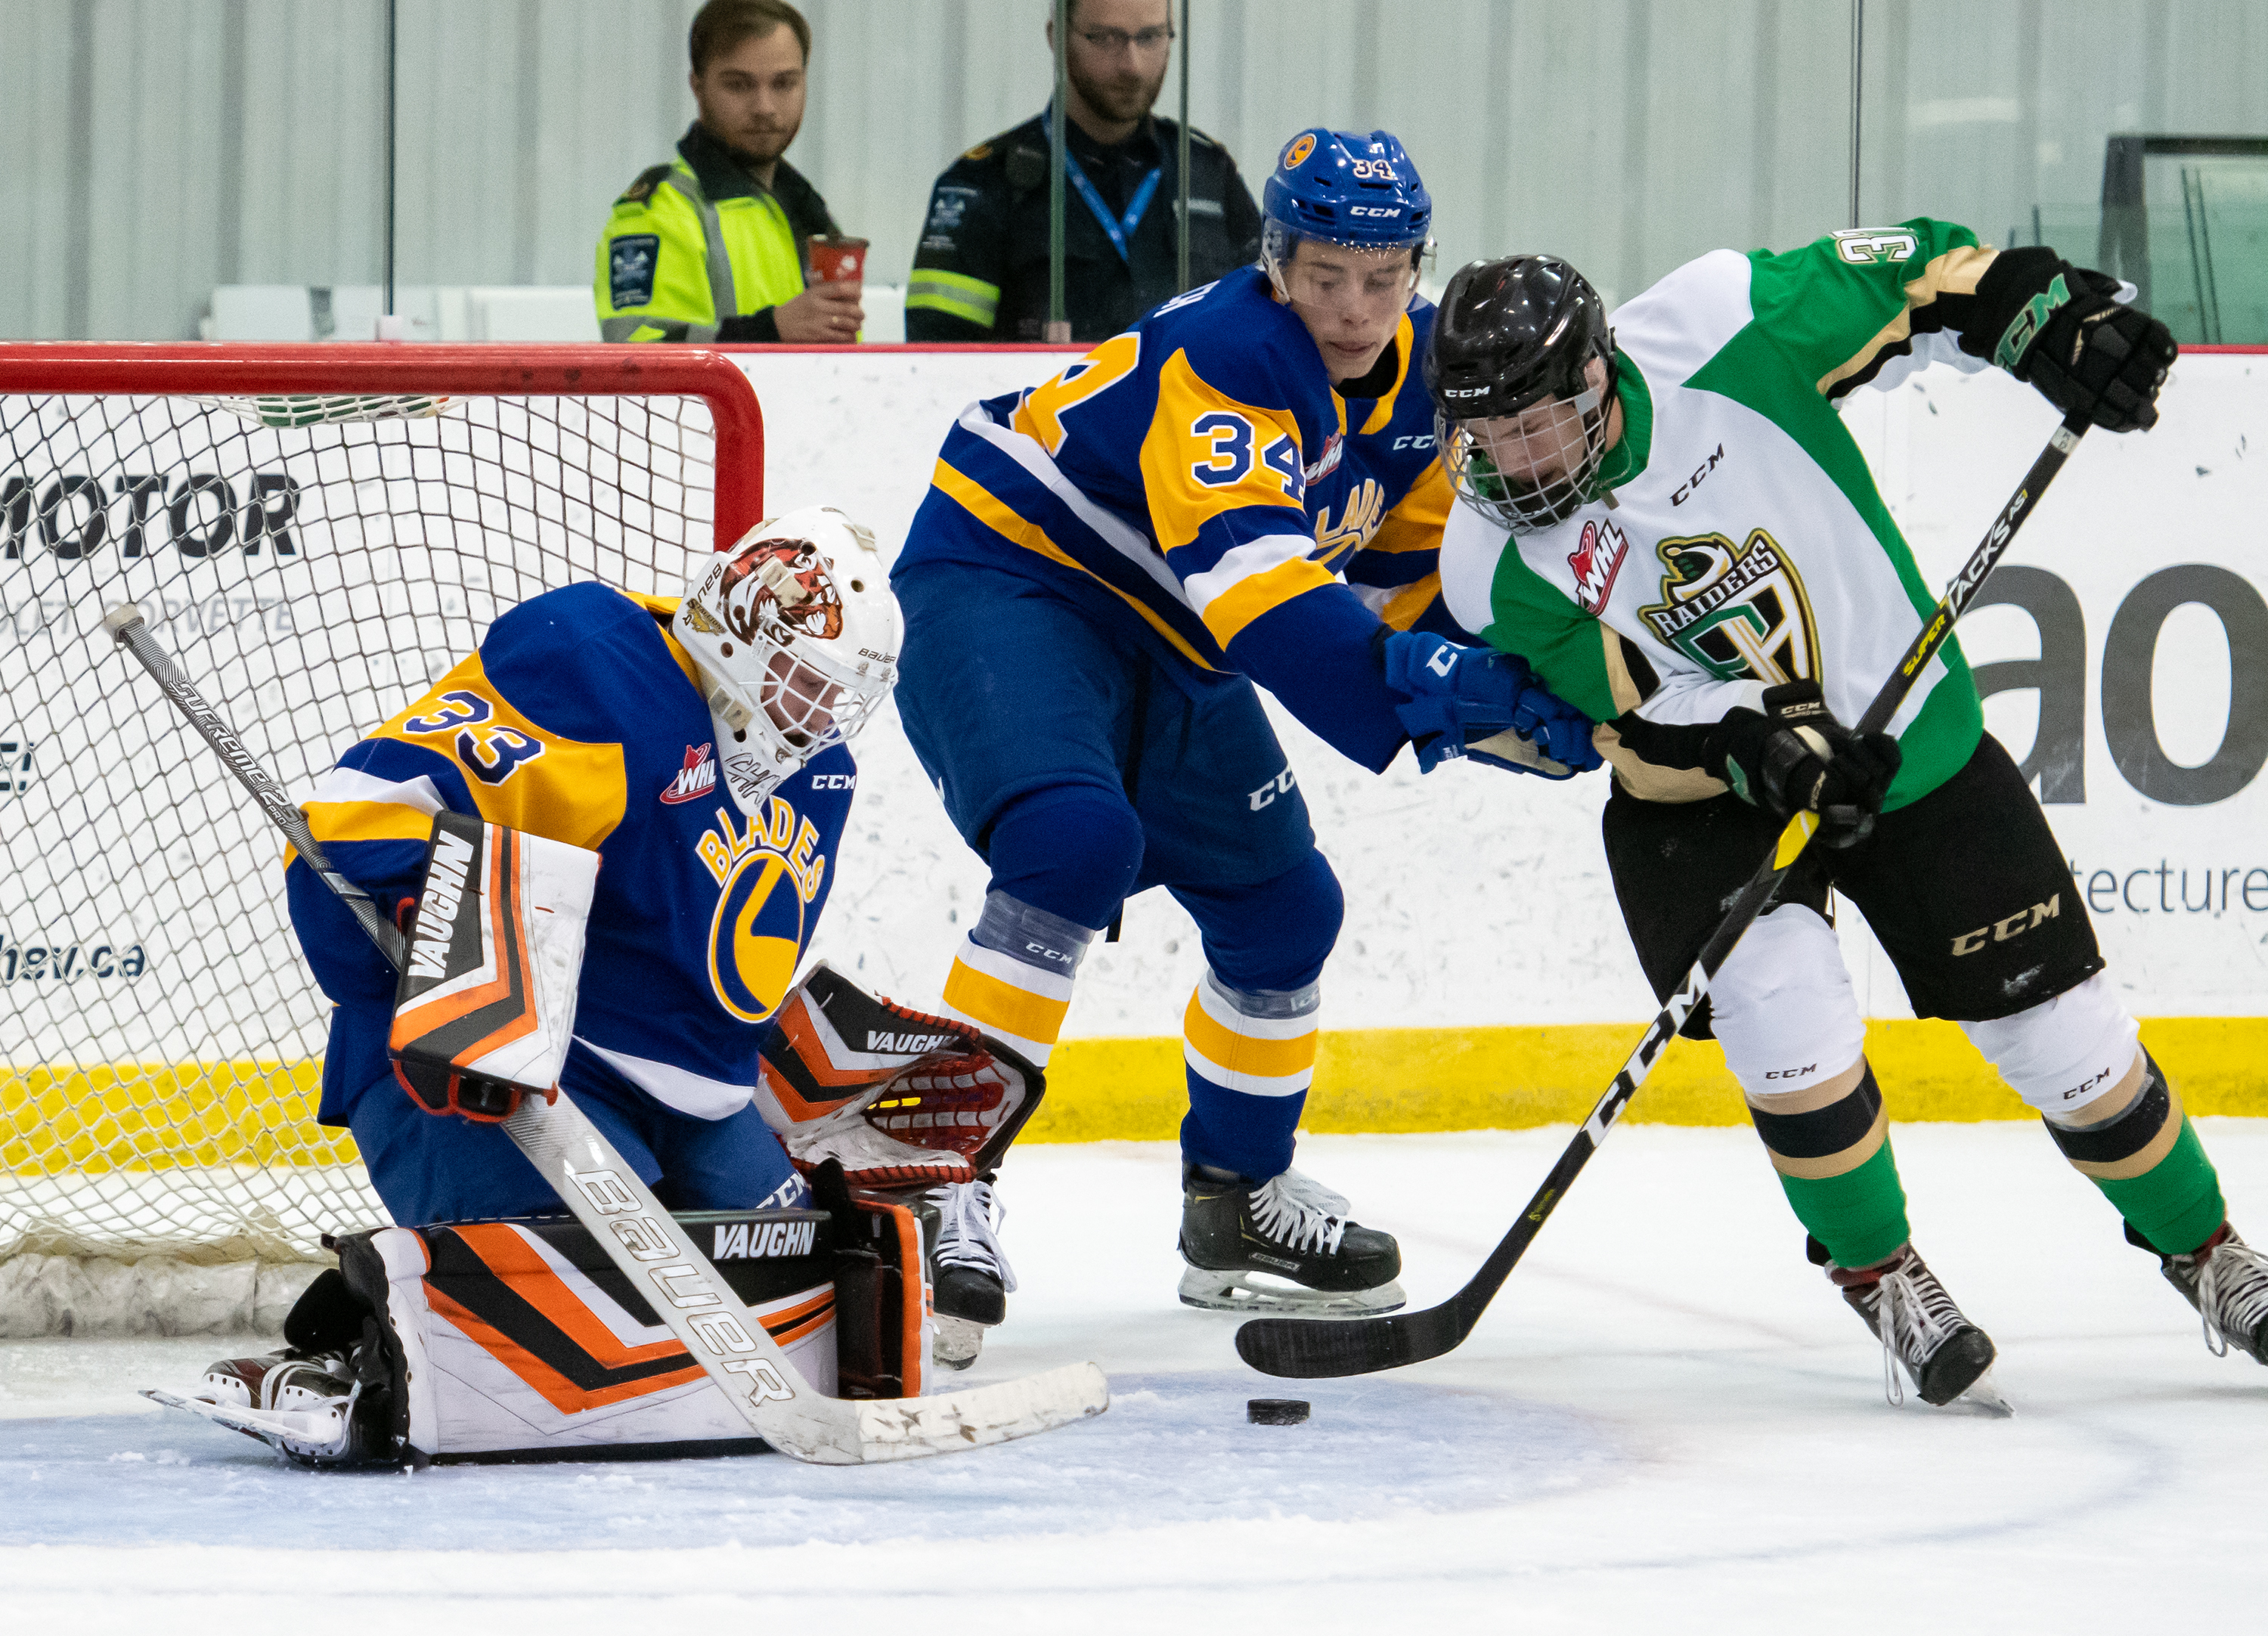 Ethan Chadwick in action for the Blades during the 2019 Pre-Season.